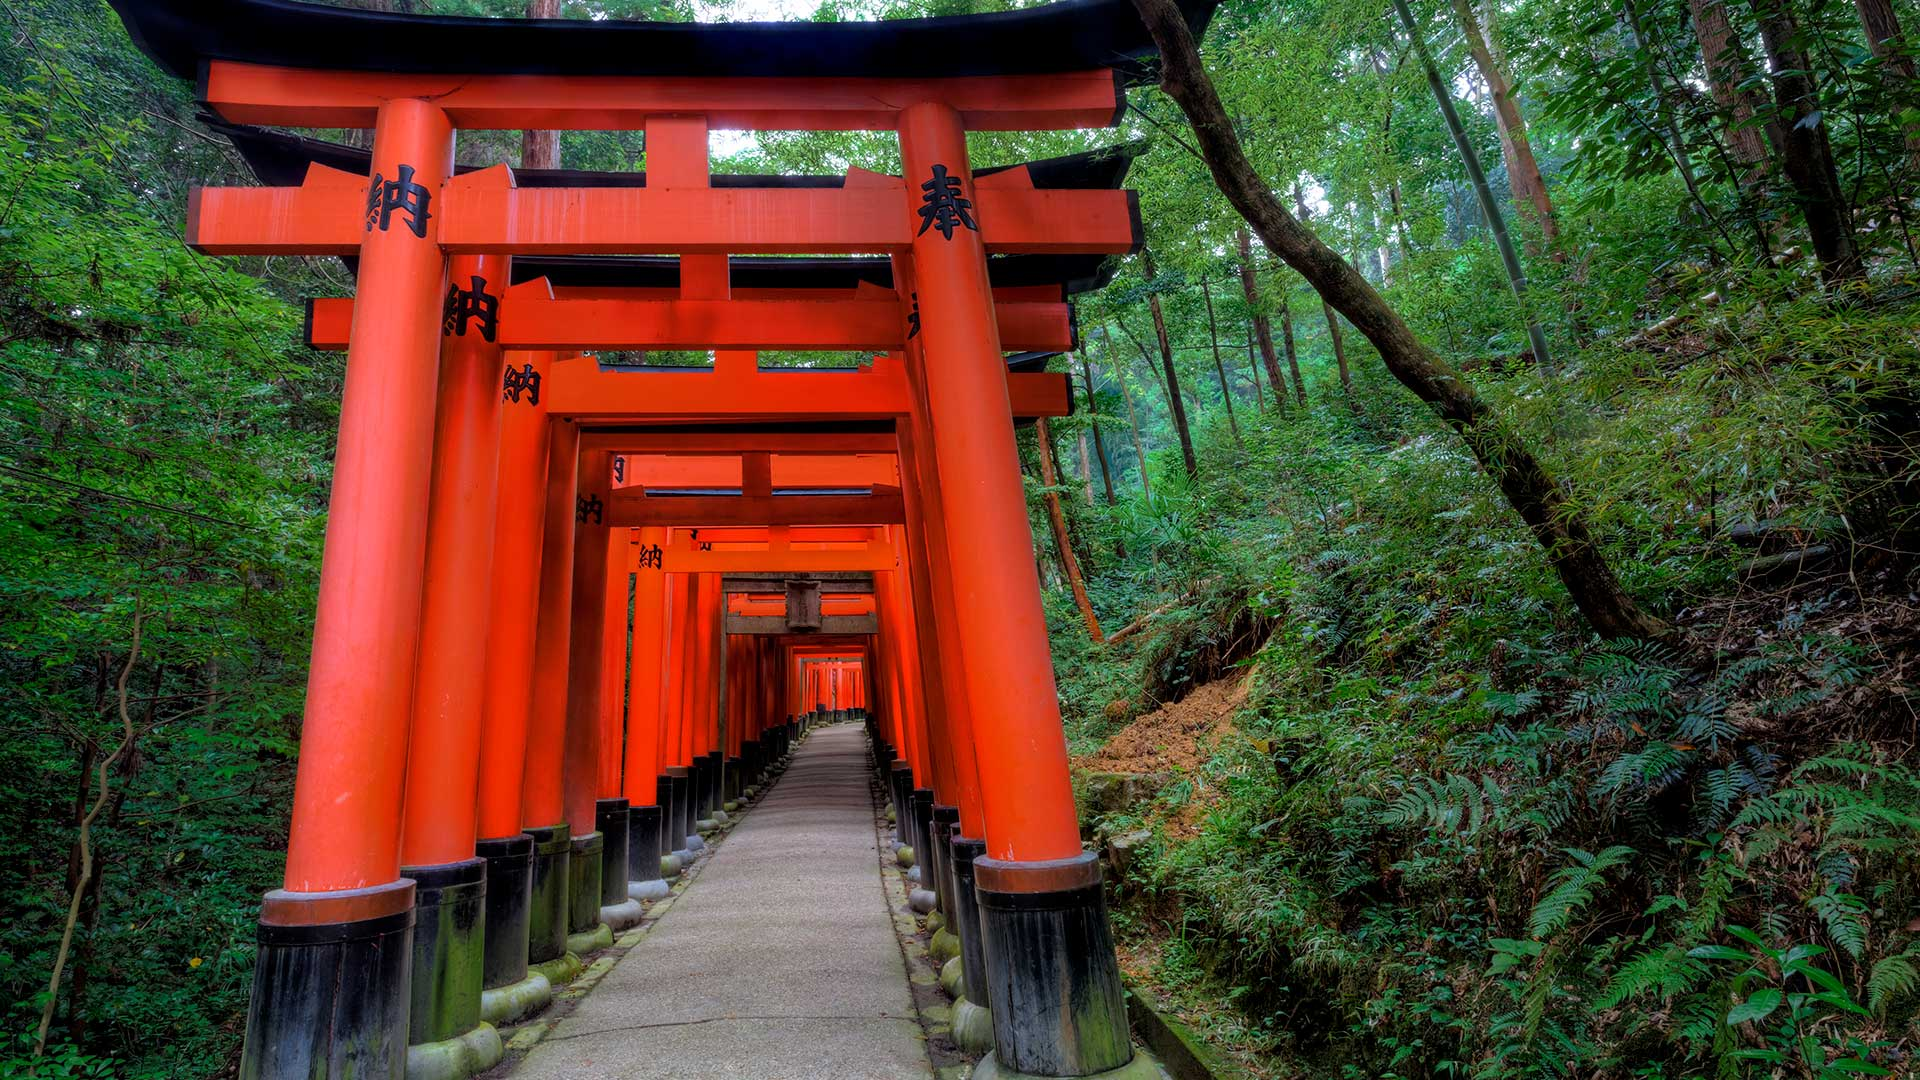 Torii Gates in the Fushimi-Inari-Taisha Shinto Shrine